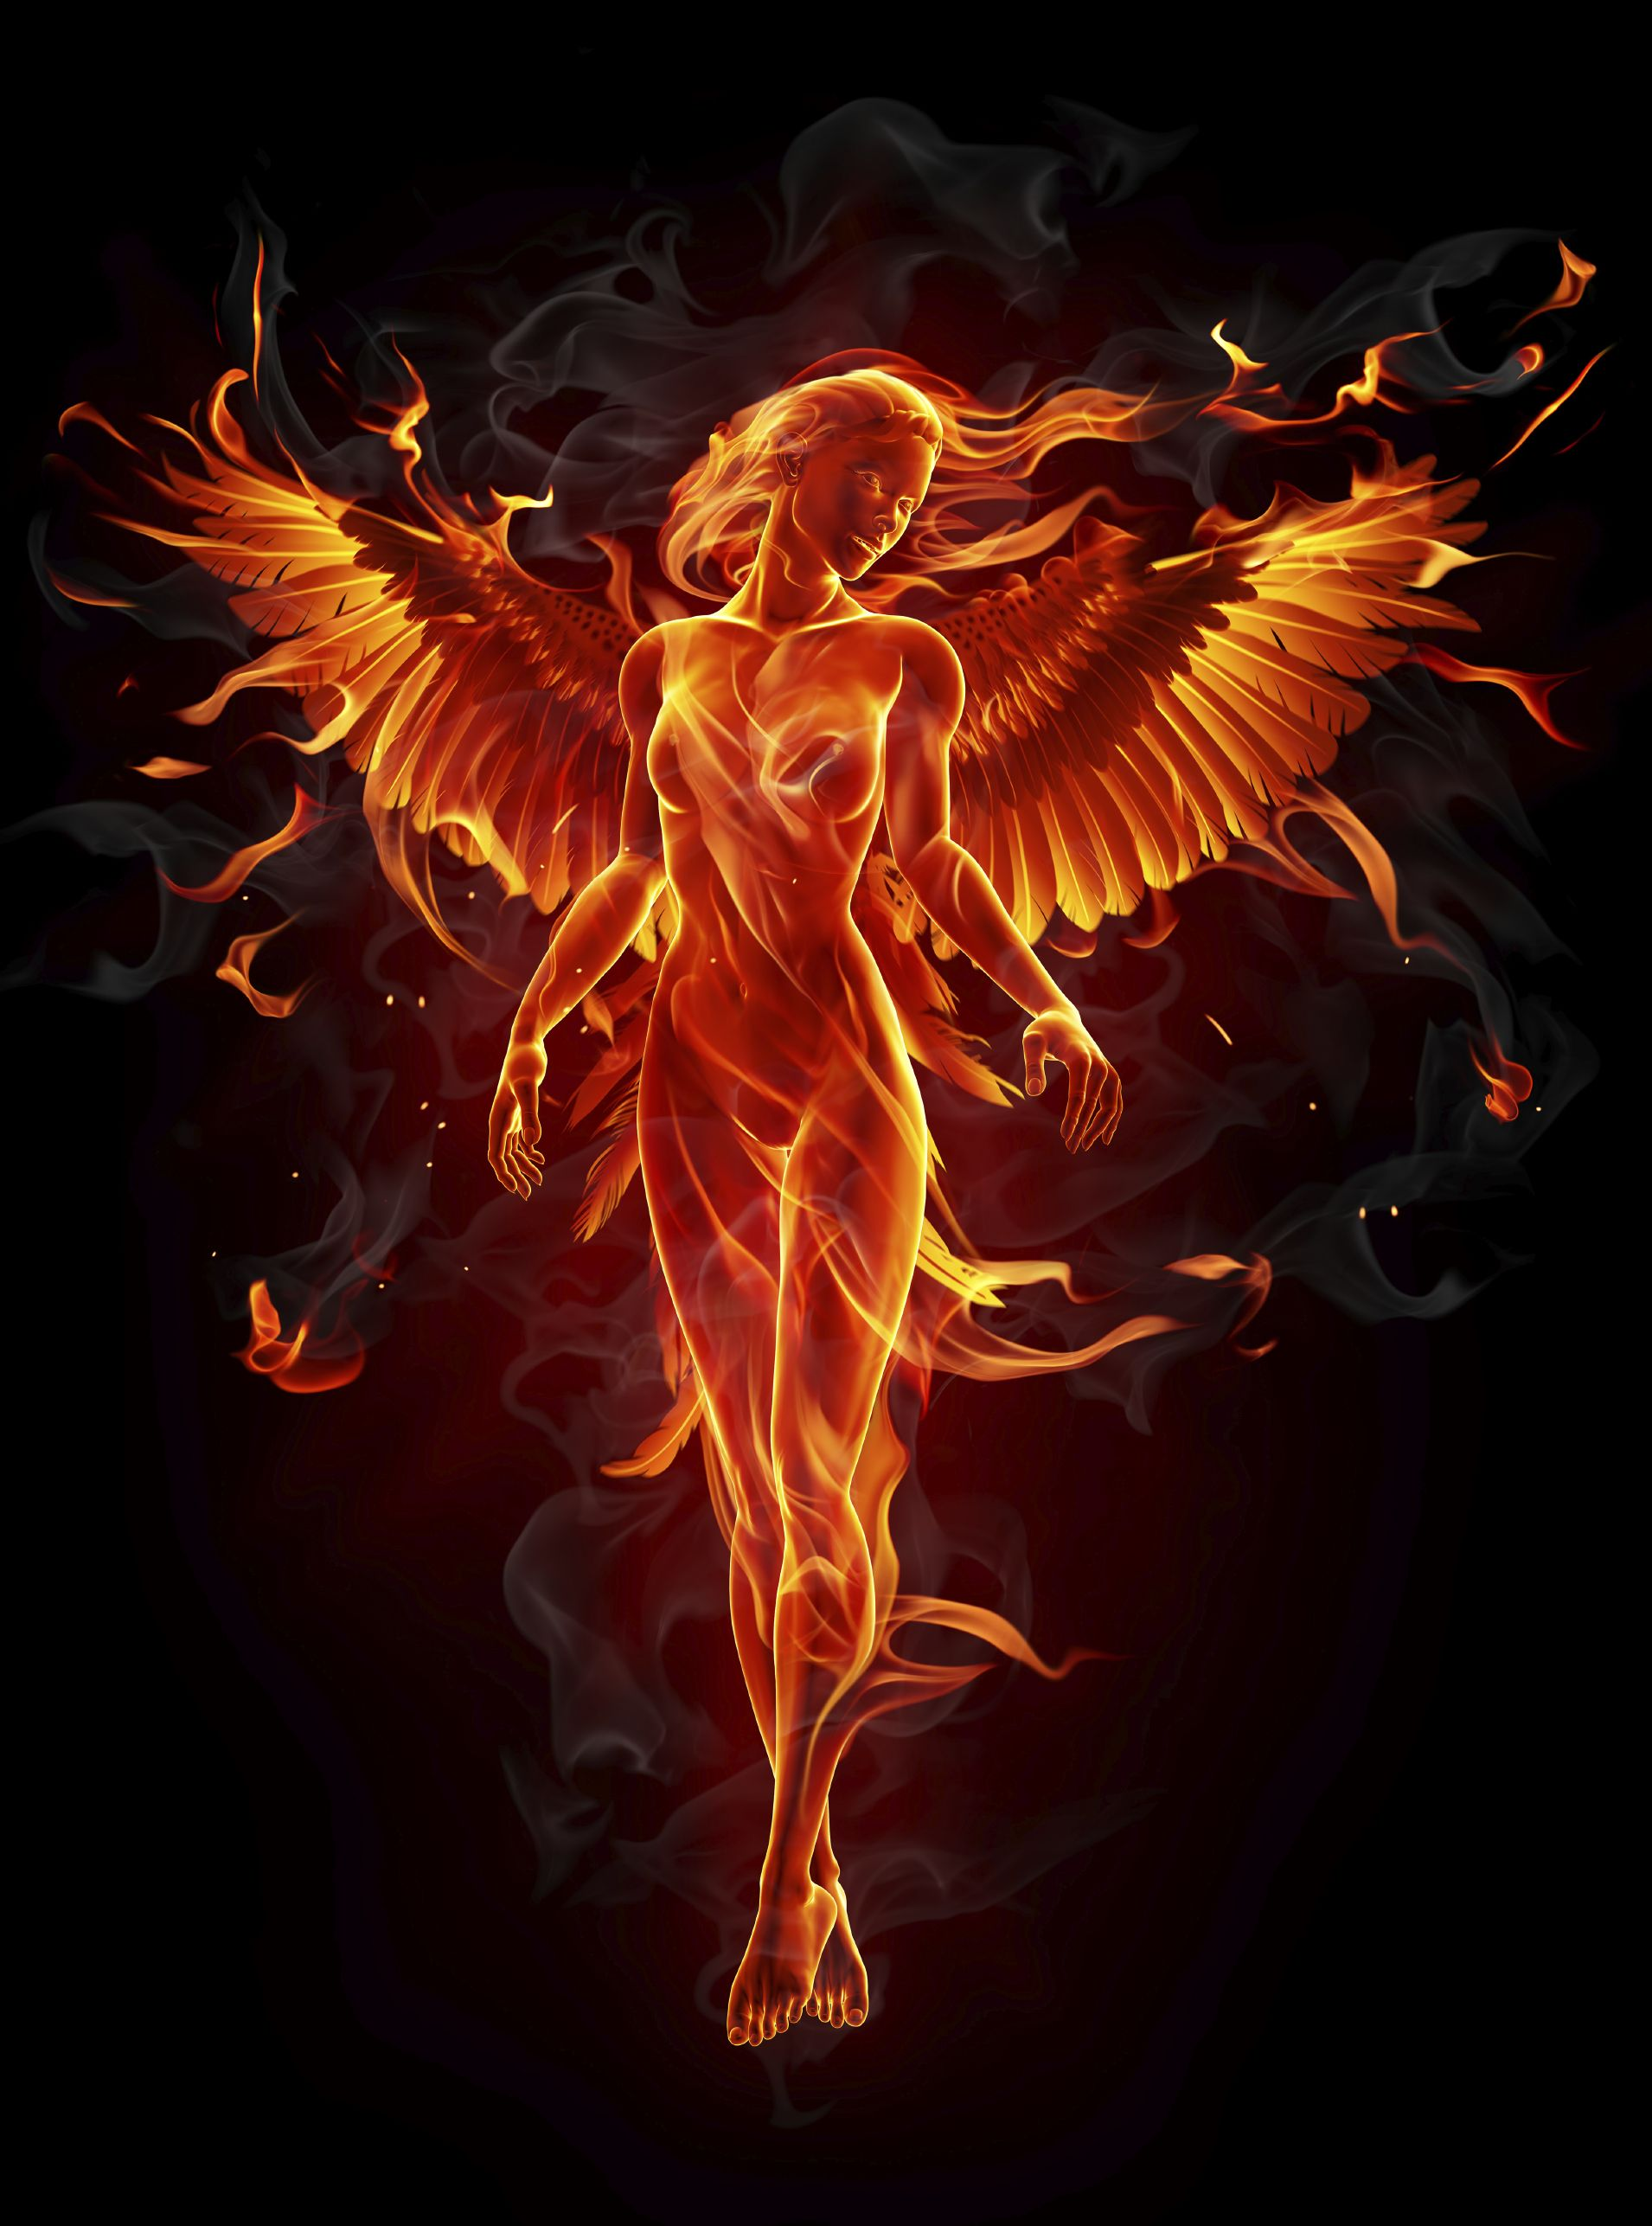 phoenix rising from the ashes - Google Search | scorpio ...